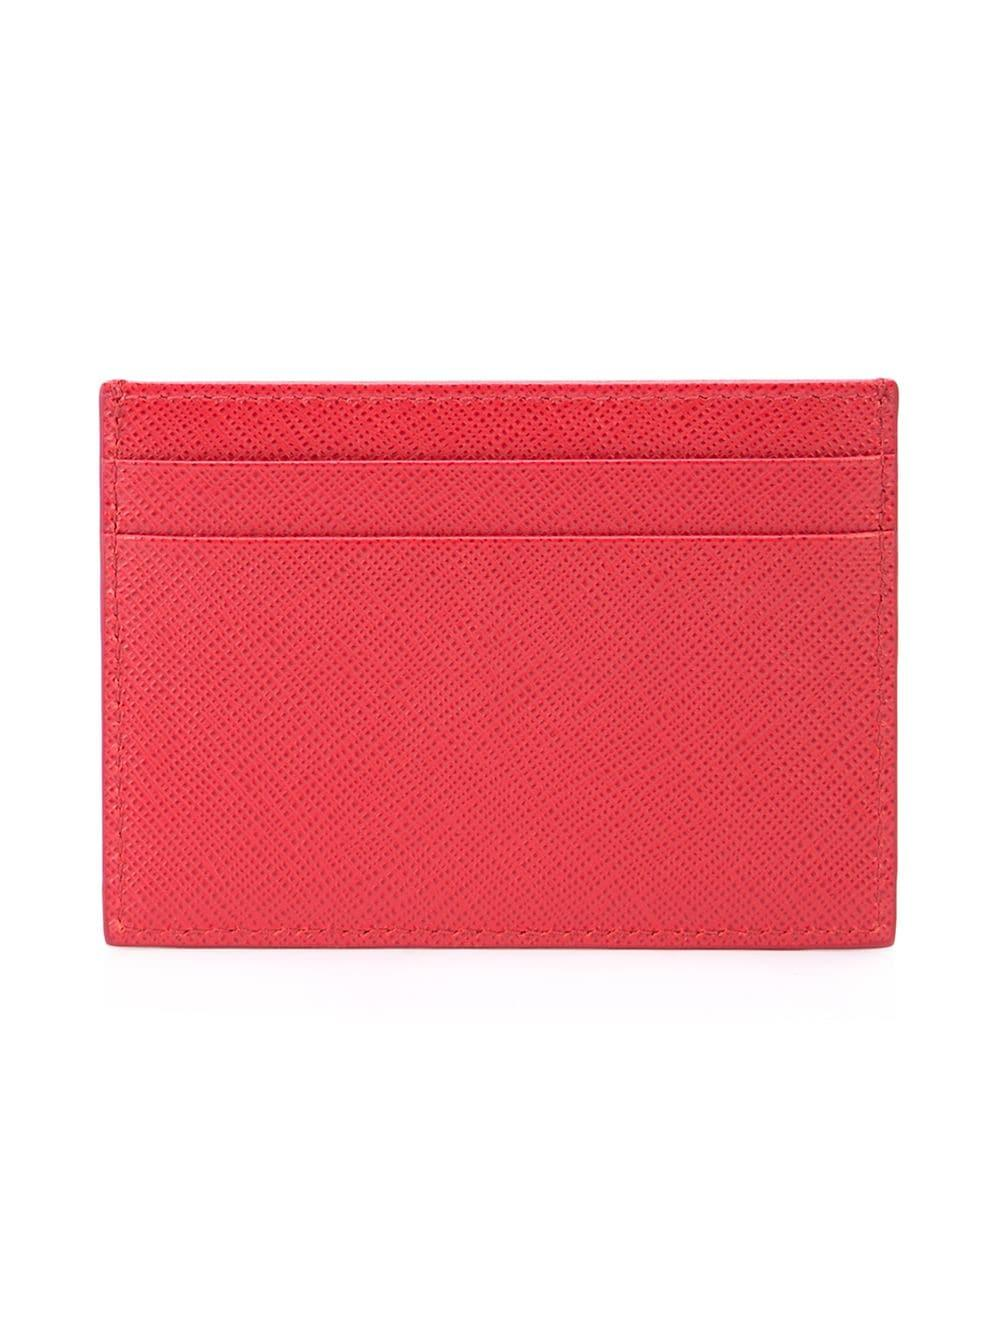 8a68bc4fa09b Lyst - Prada Printed Saffiano Leather Card Holder in Red for Men ...